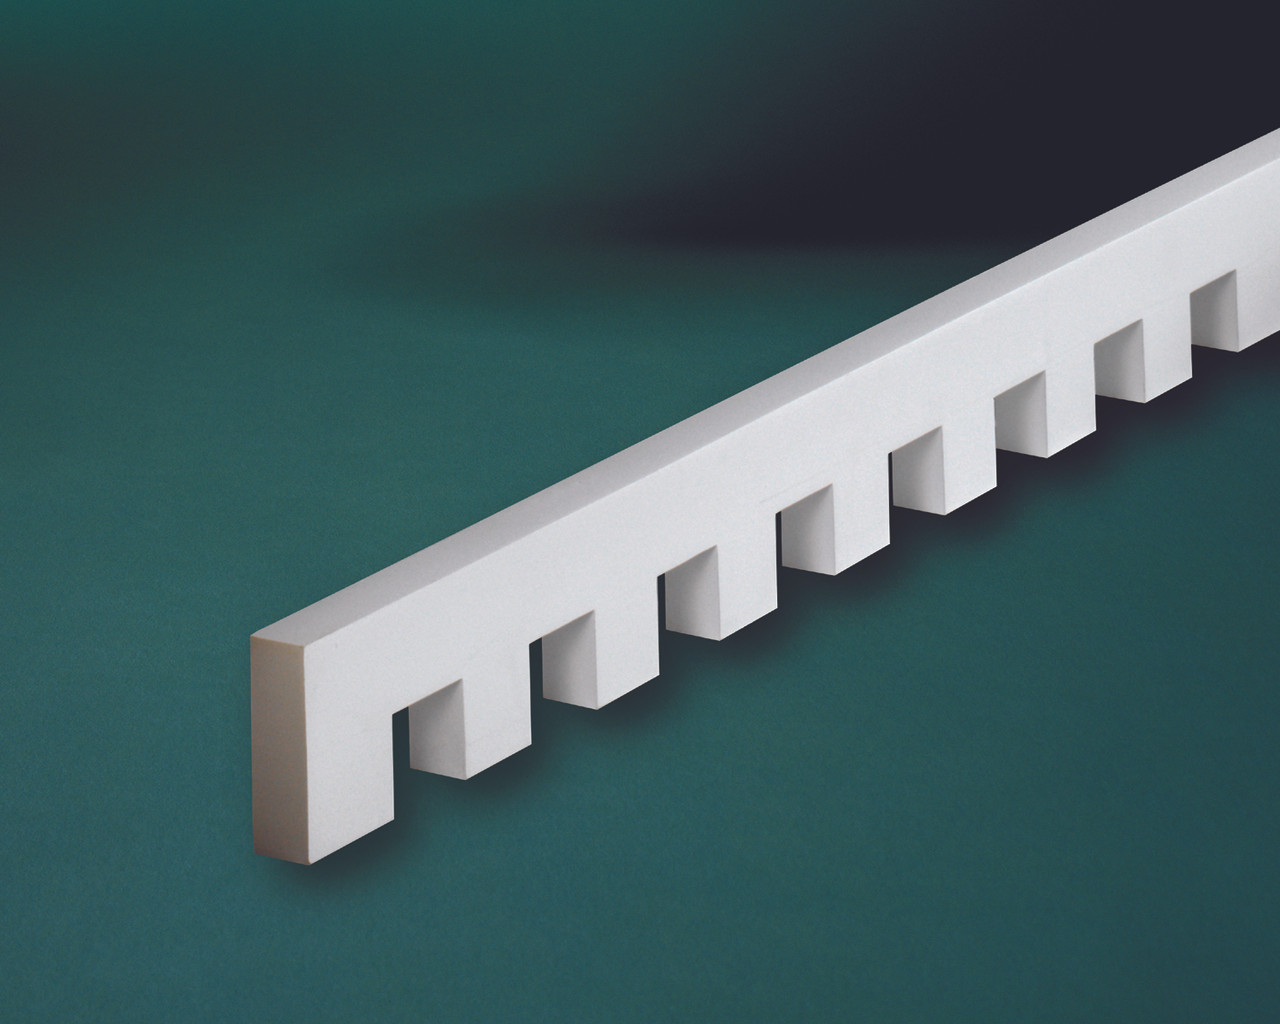 Mld354 12 for Fypon quick rail